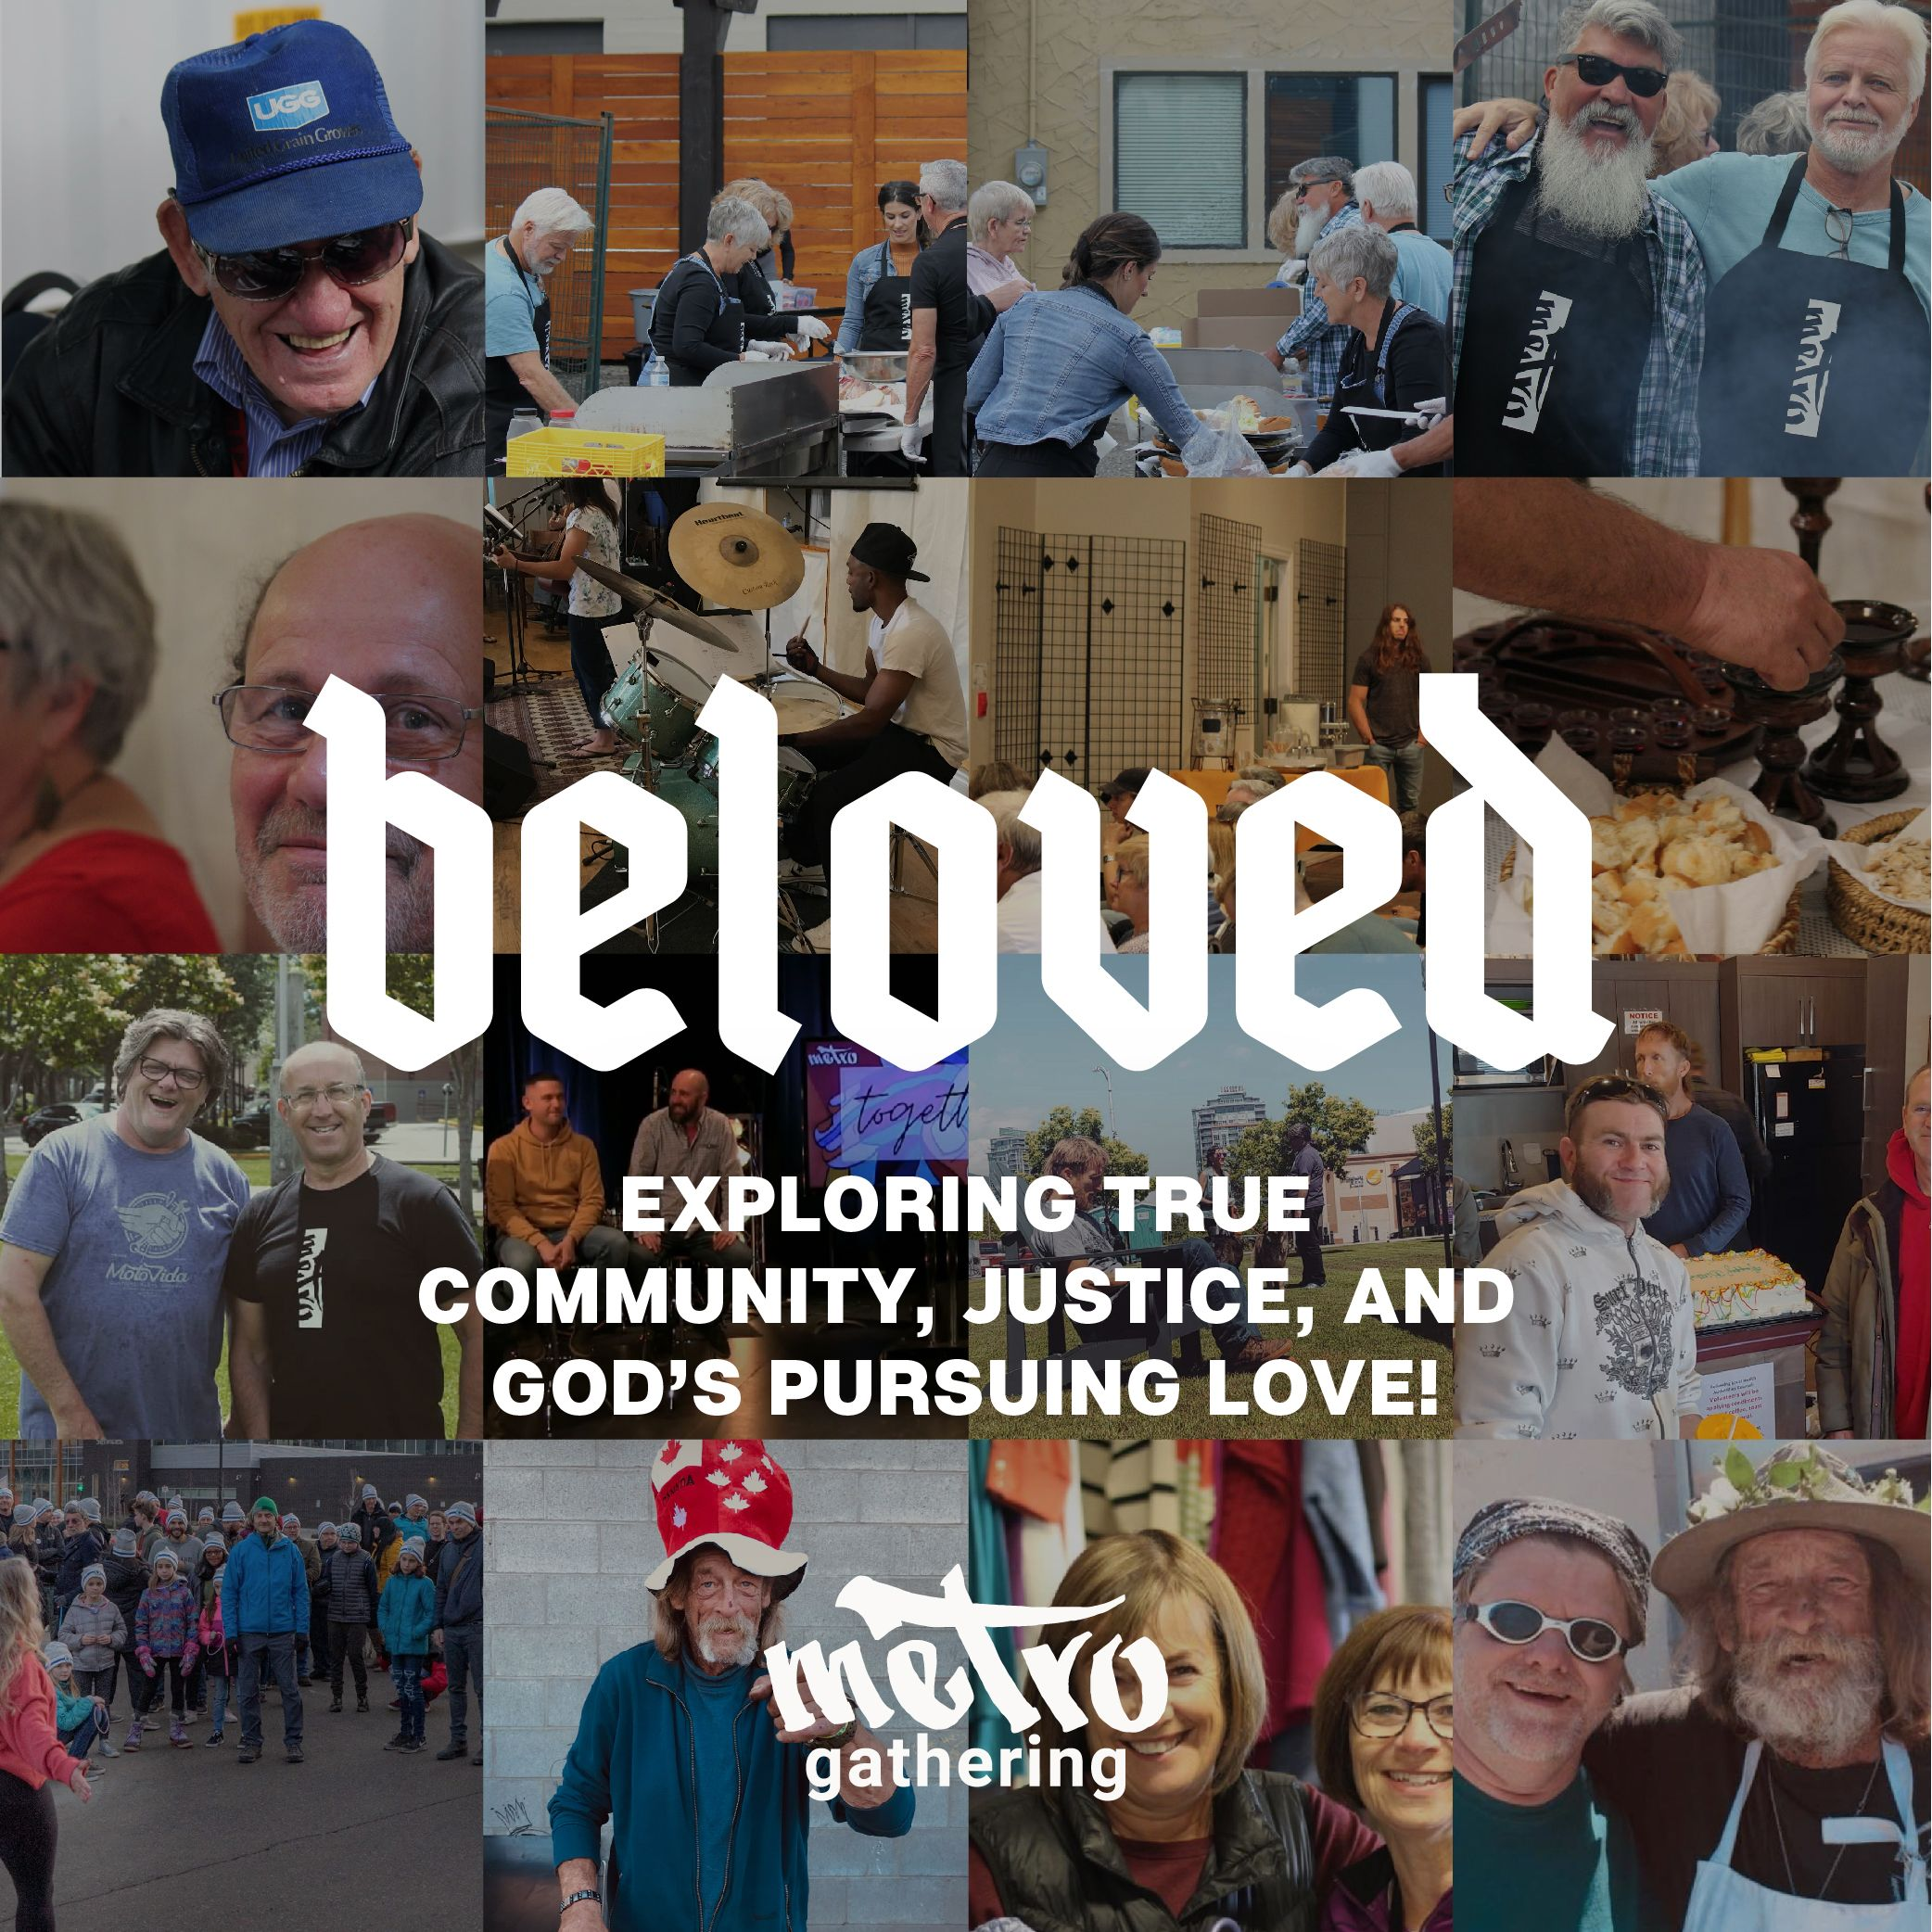 Beloved: exploring true community, justice, and God's pursuing love graphic